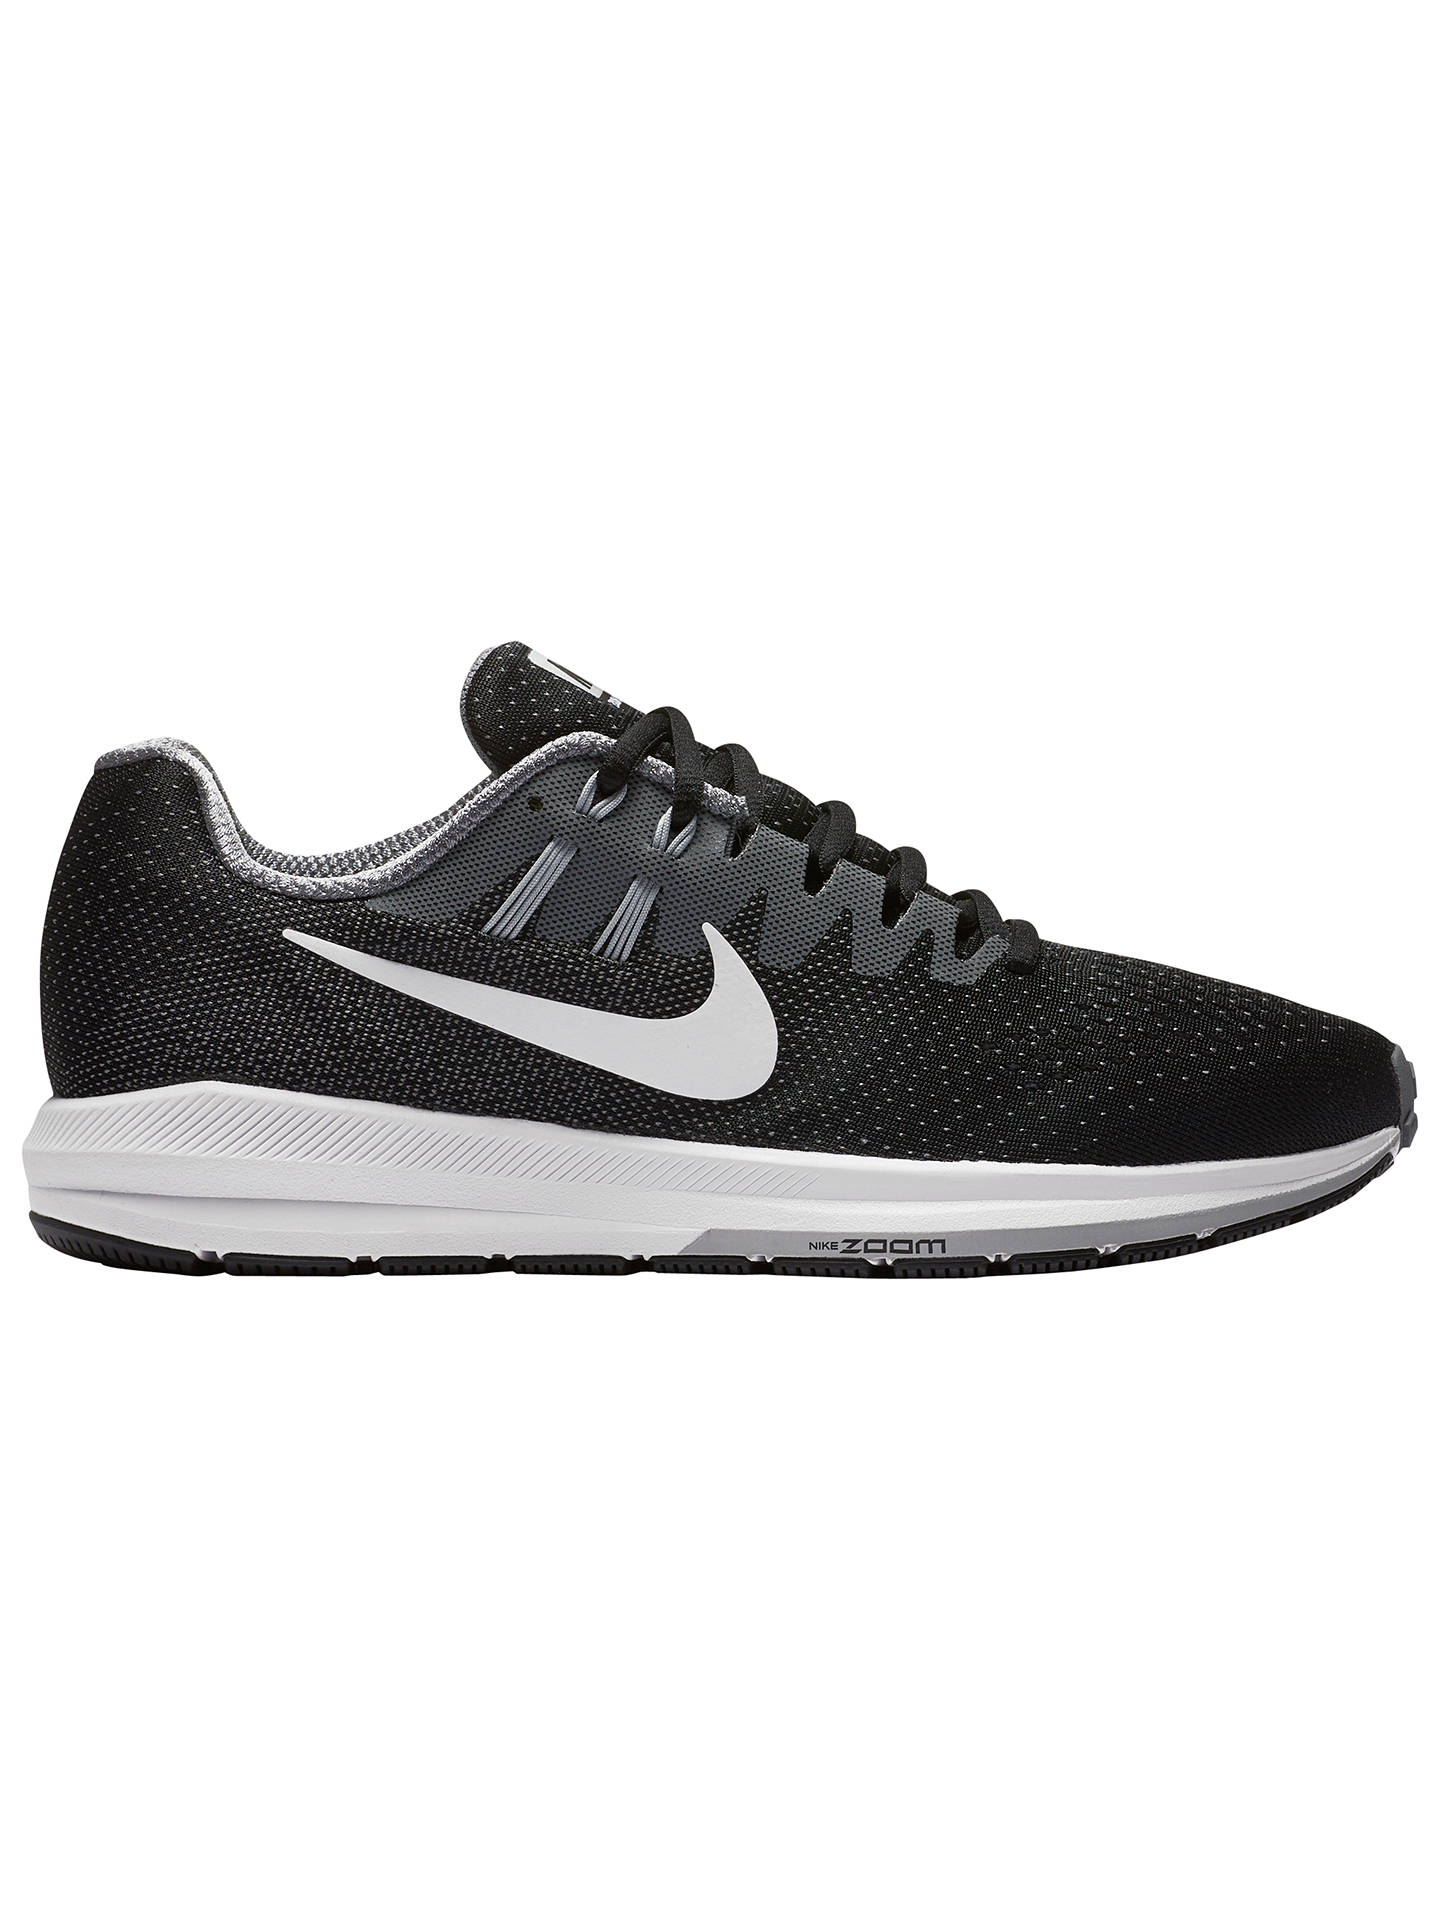 Nike Air Zoom Structure 20 Men's Running Shoes, Black at